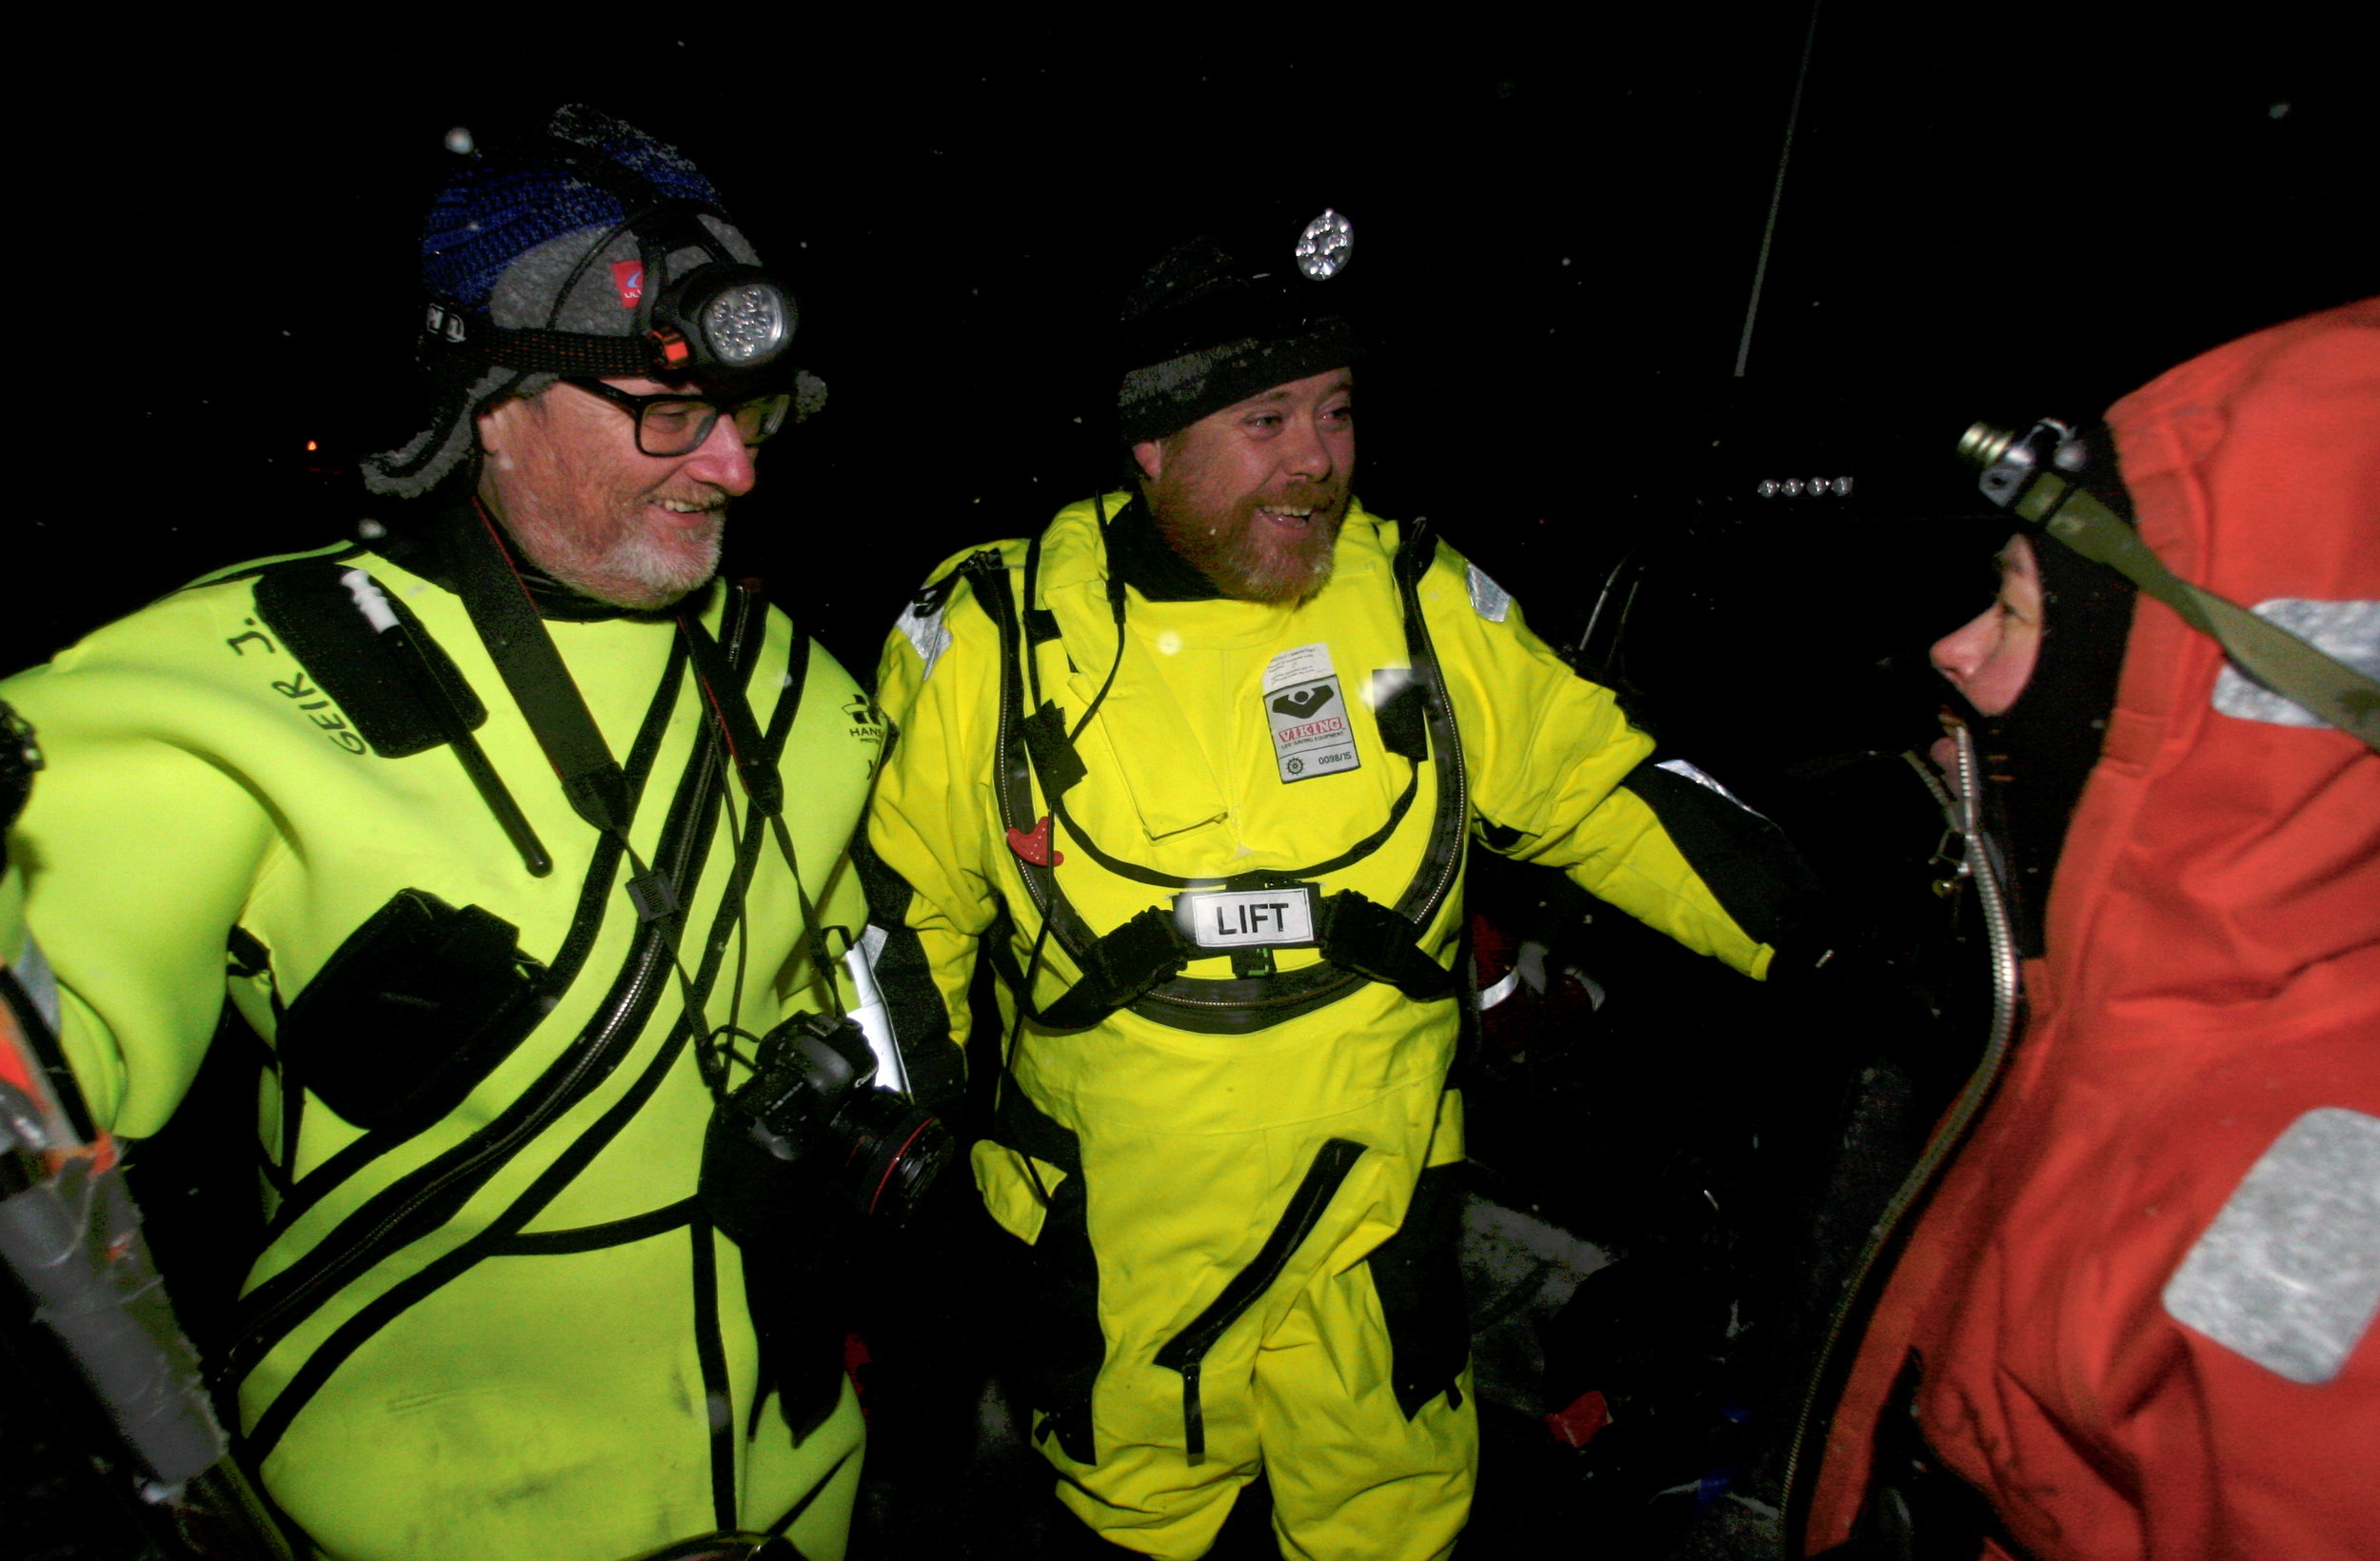 Maarja Krussmaa (right) from Estonia is a professor of robot technology and collaborates closely with biology professors Geir Johnsen and Jørgen Berge to discover all the life forms that are active in the ocean during the polar night. Photo: Ole Magnus Rapp